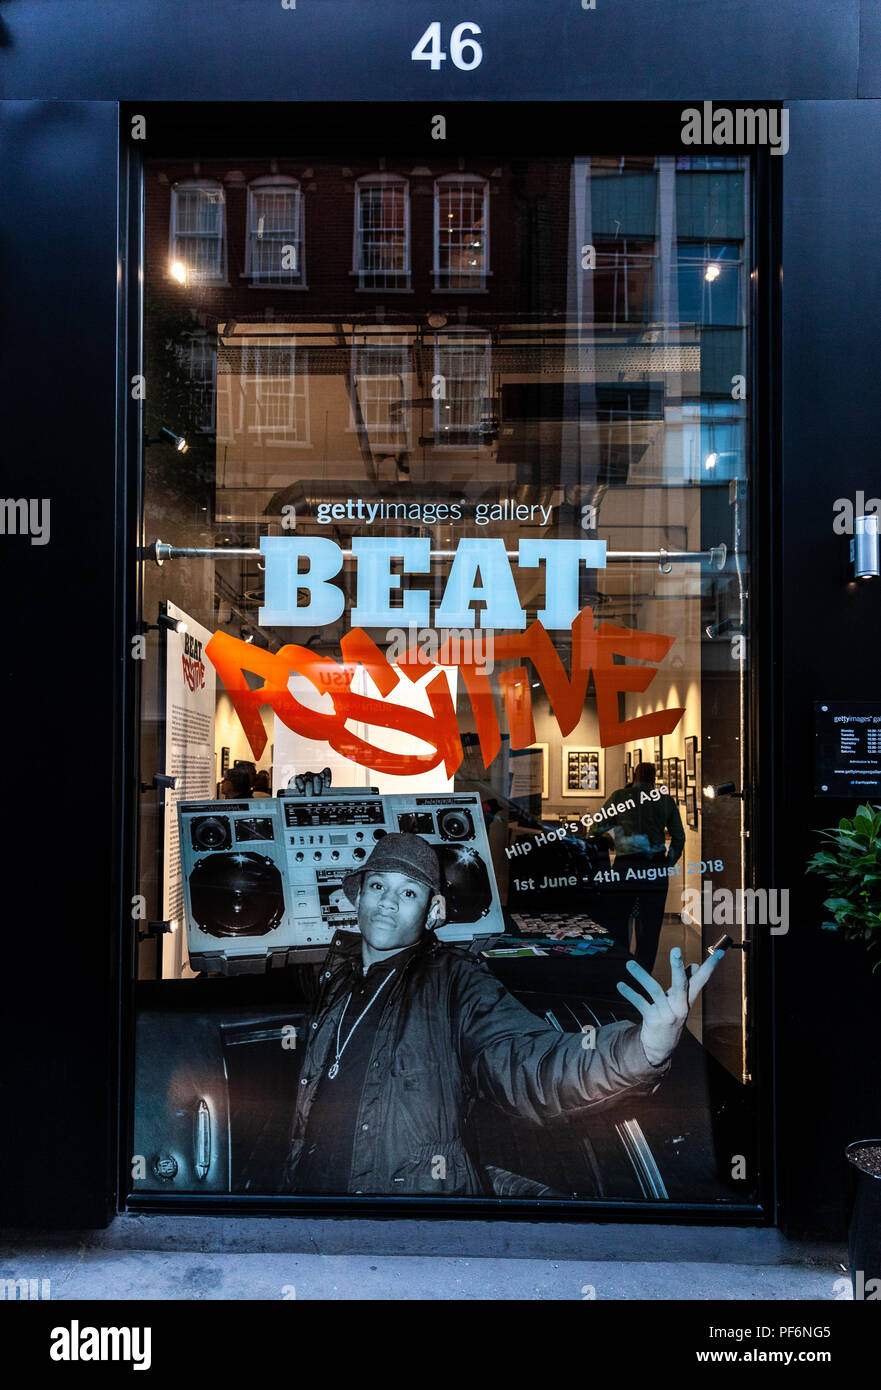 Getty Images gallery shop window, London, England, UK. - Stock Image